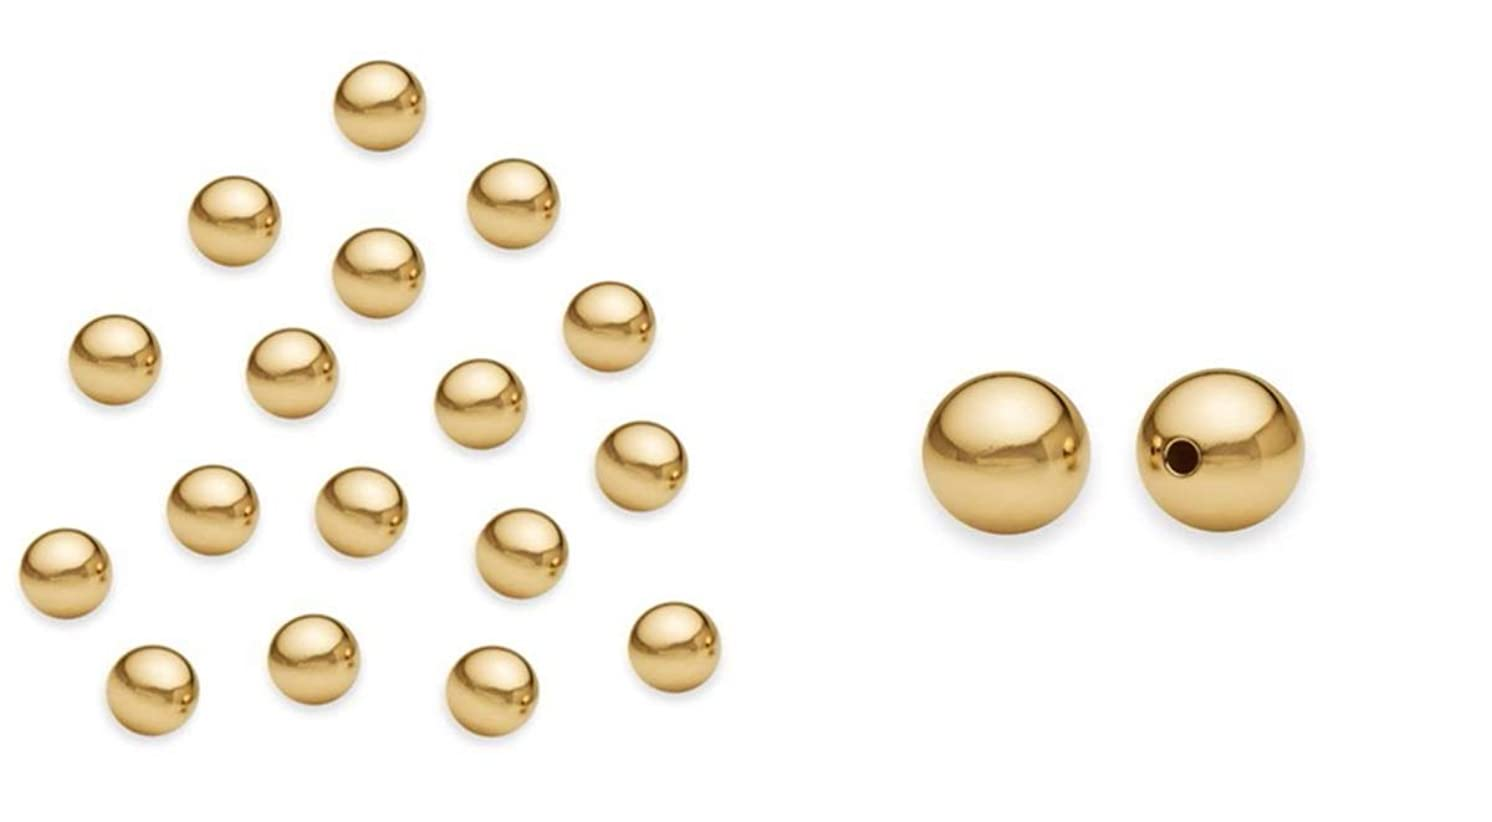 30pcs 14k Gold on Sterling Silver 8mm Seamless Smooth Loose Round Spacer Beads for Jewelry Craft Making Findings SS343